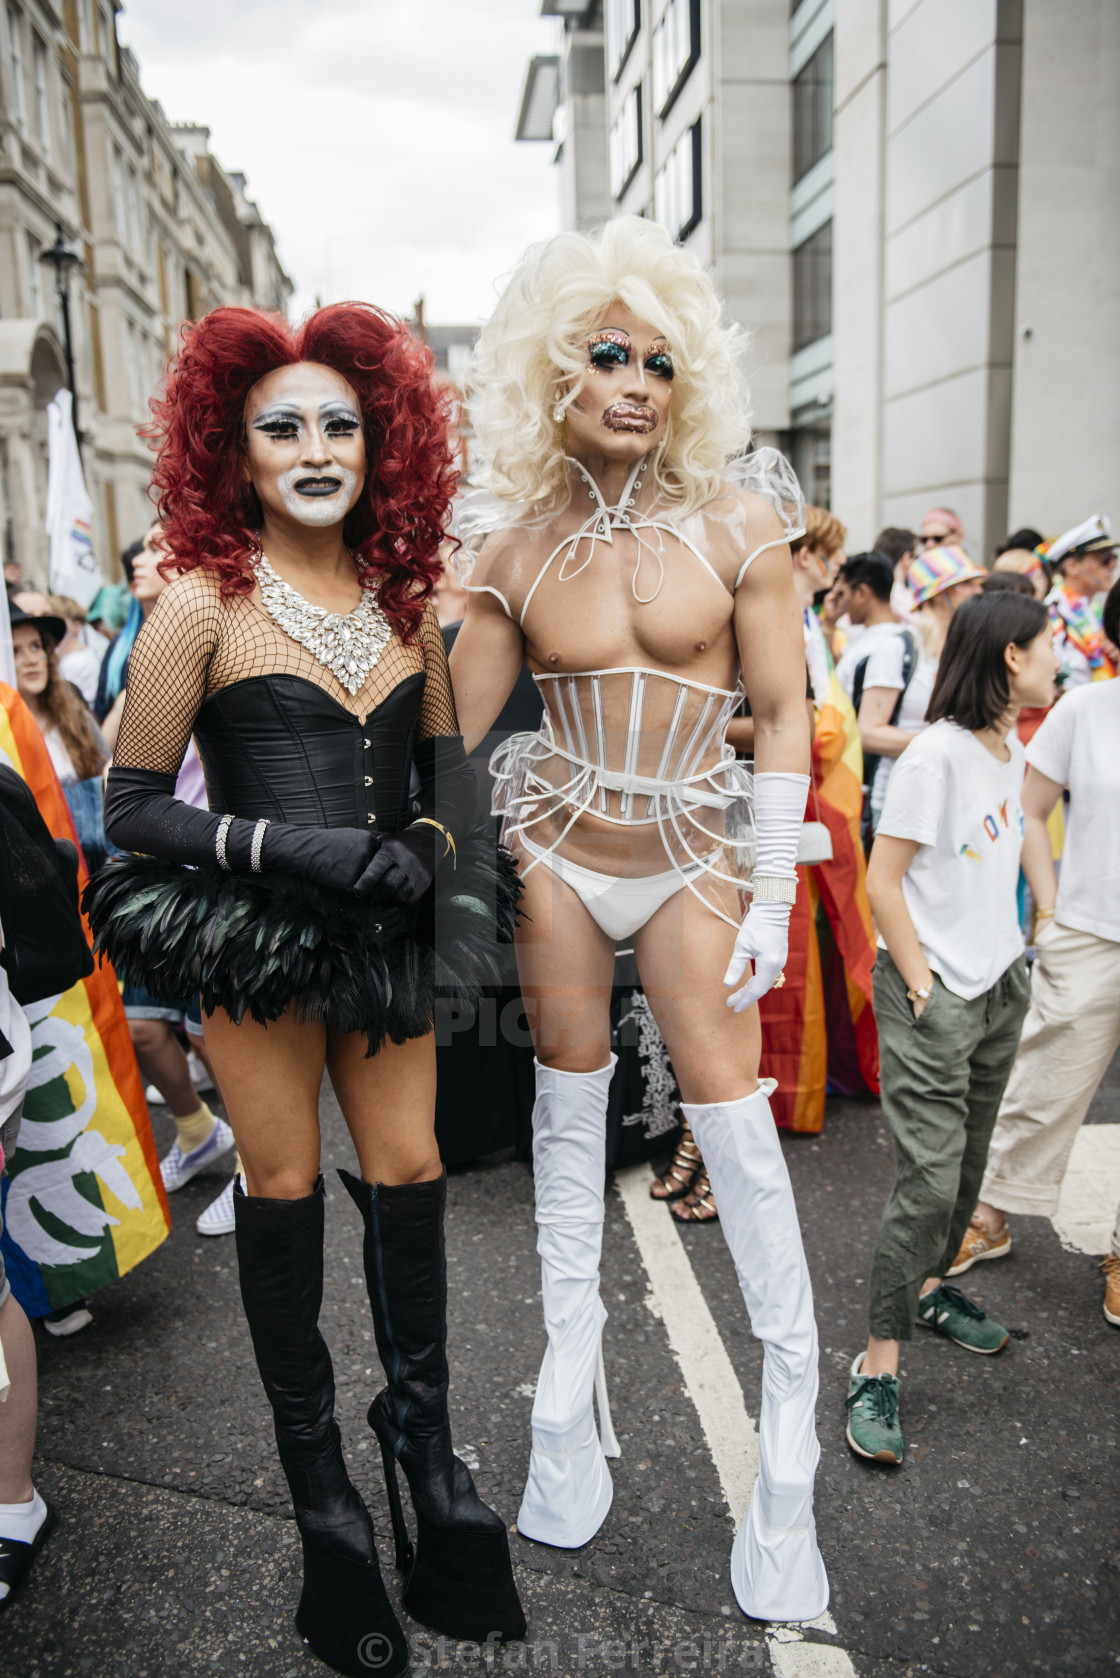 """London Pride '19 [3]"" stock image"